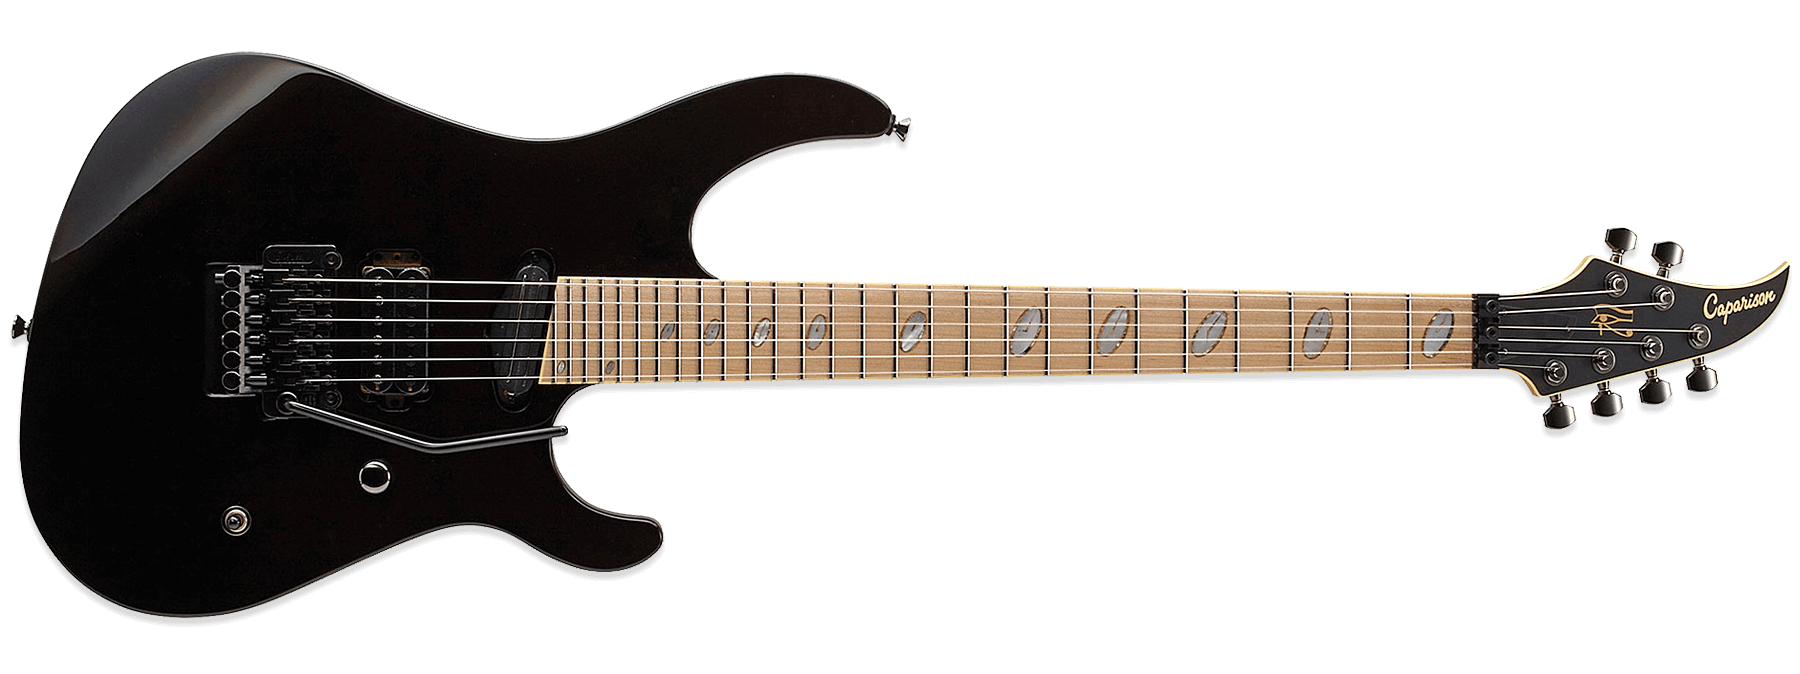 Caparison Horus M3 MF Trans Spectrum Black